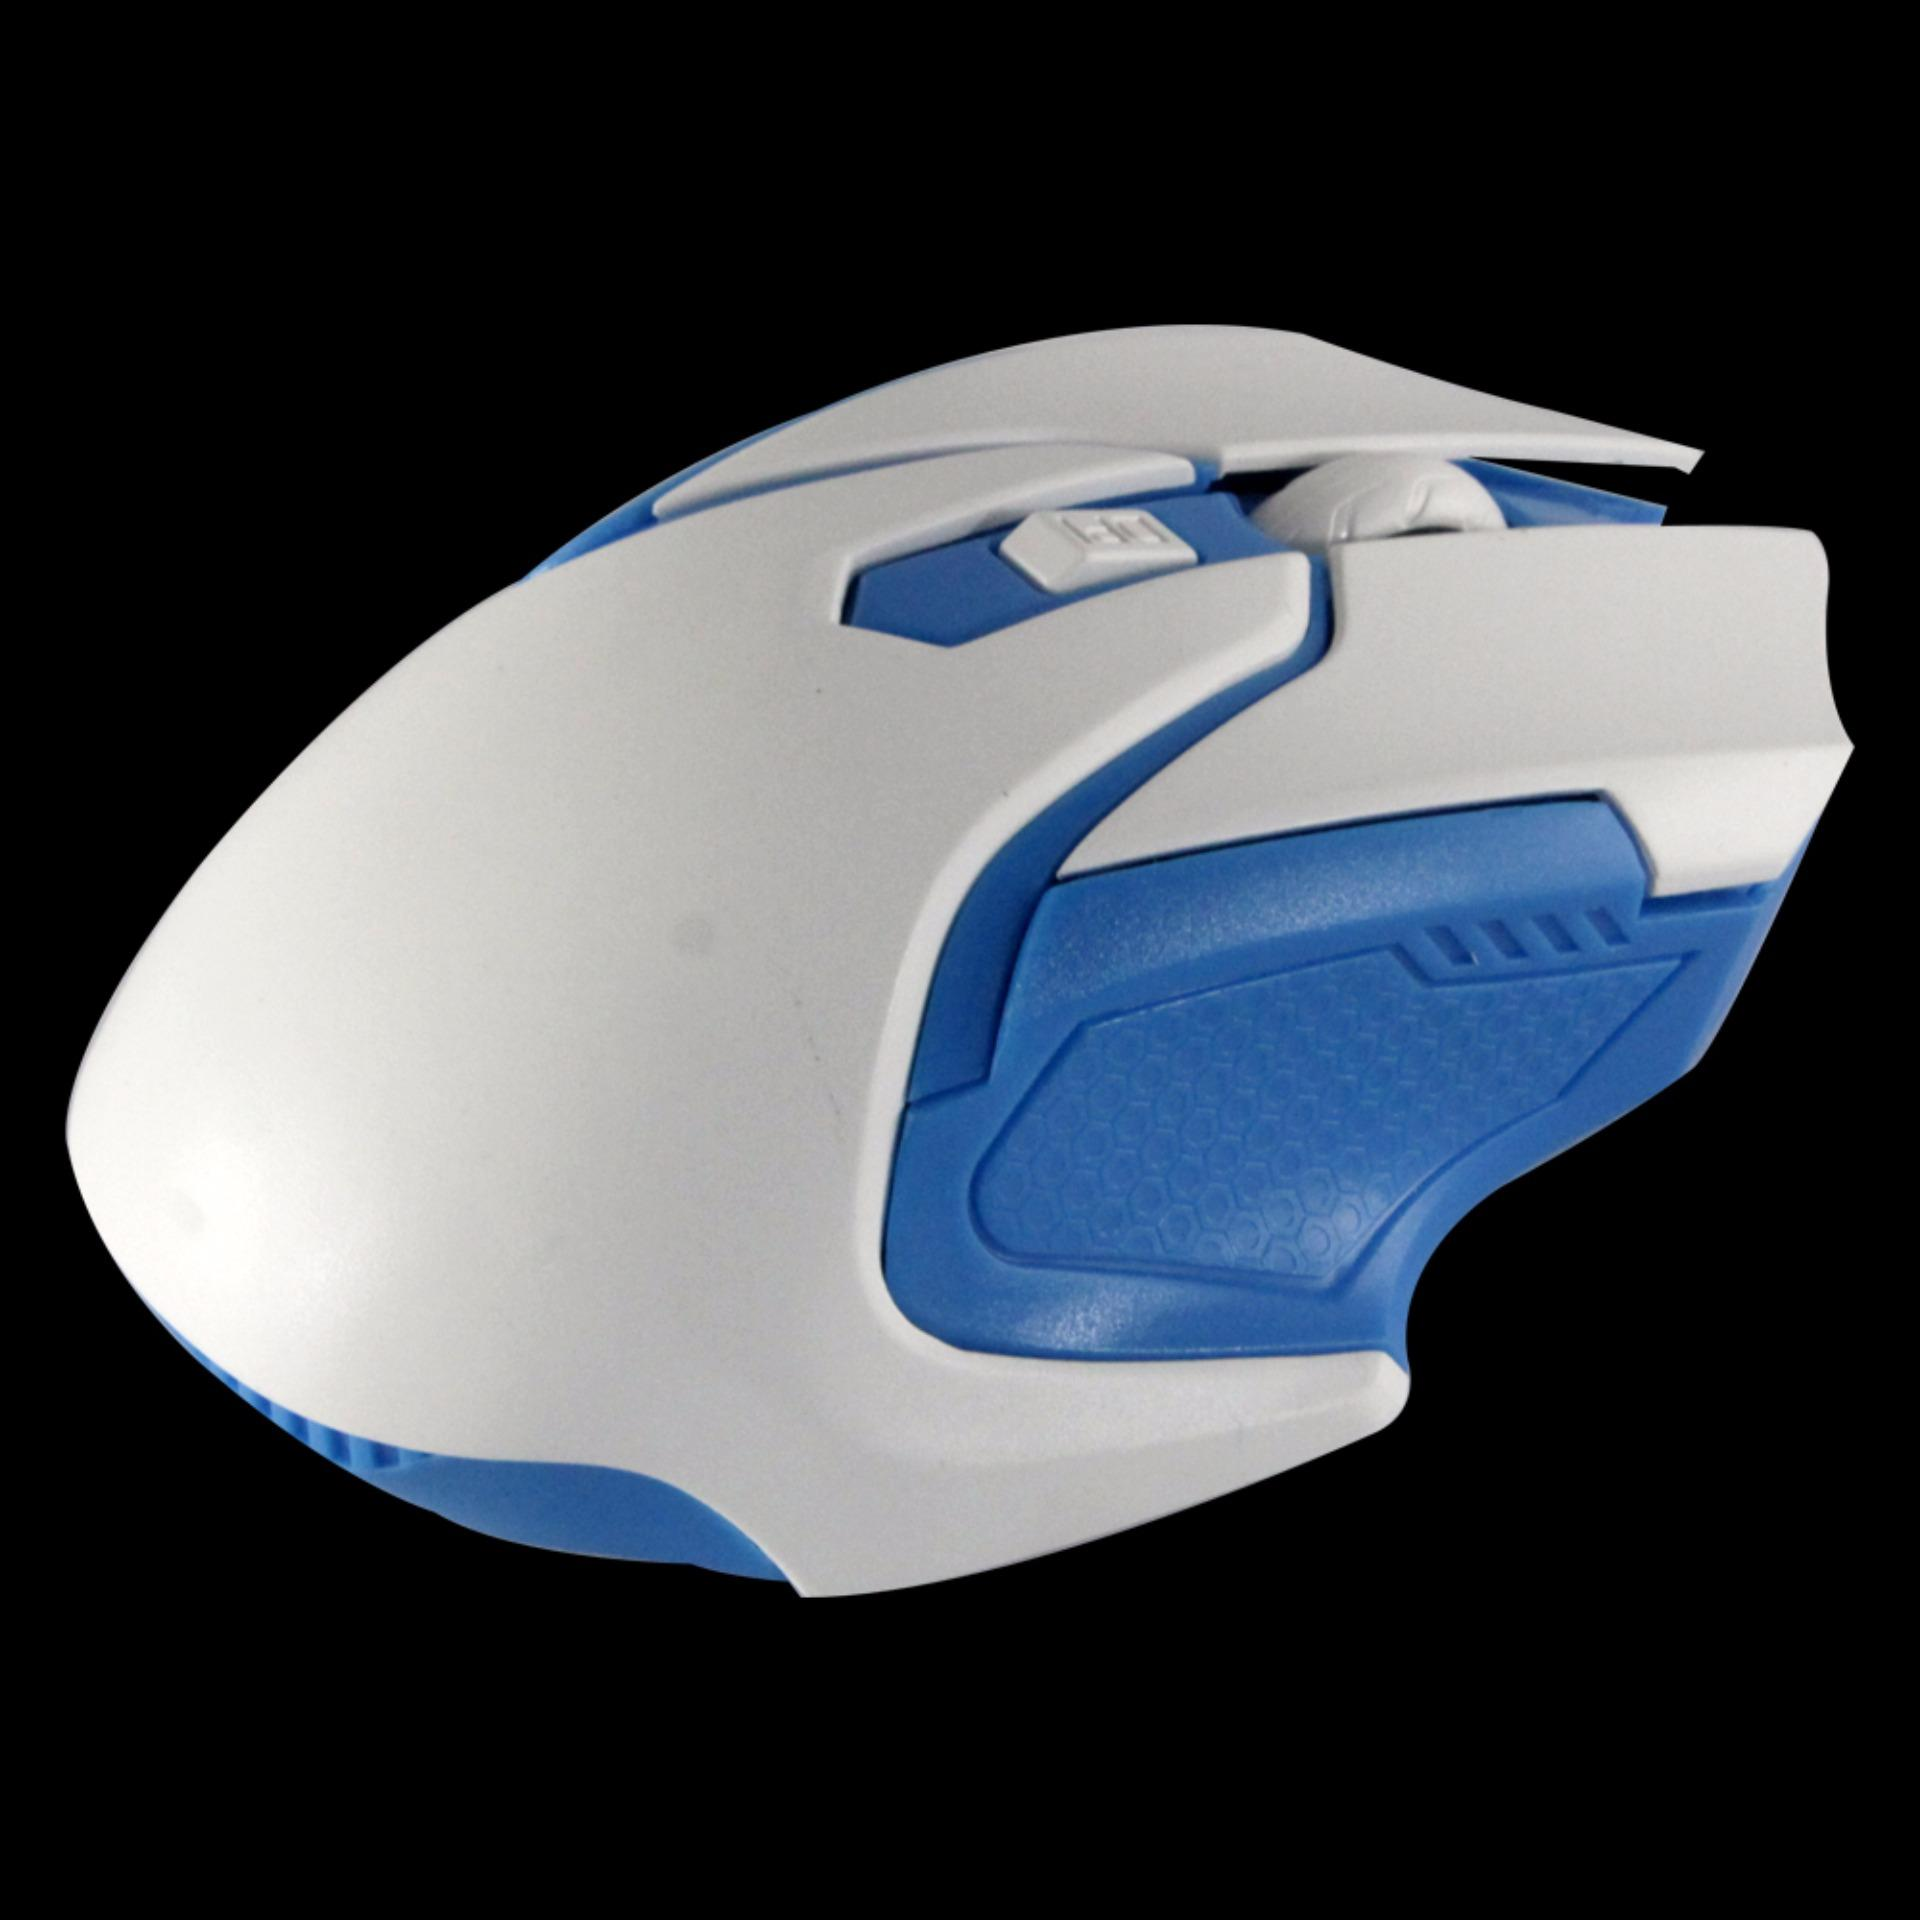 ... uNiQue Mouse Wireless M101 Mouse Nirkabel Untuk Komputer dan Laptop White Blue ...